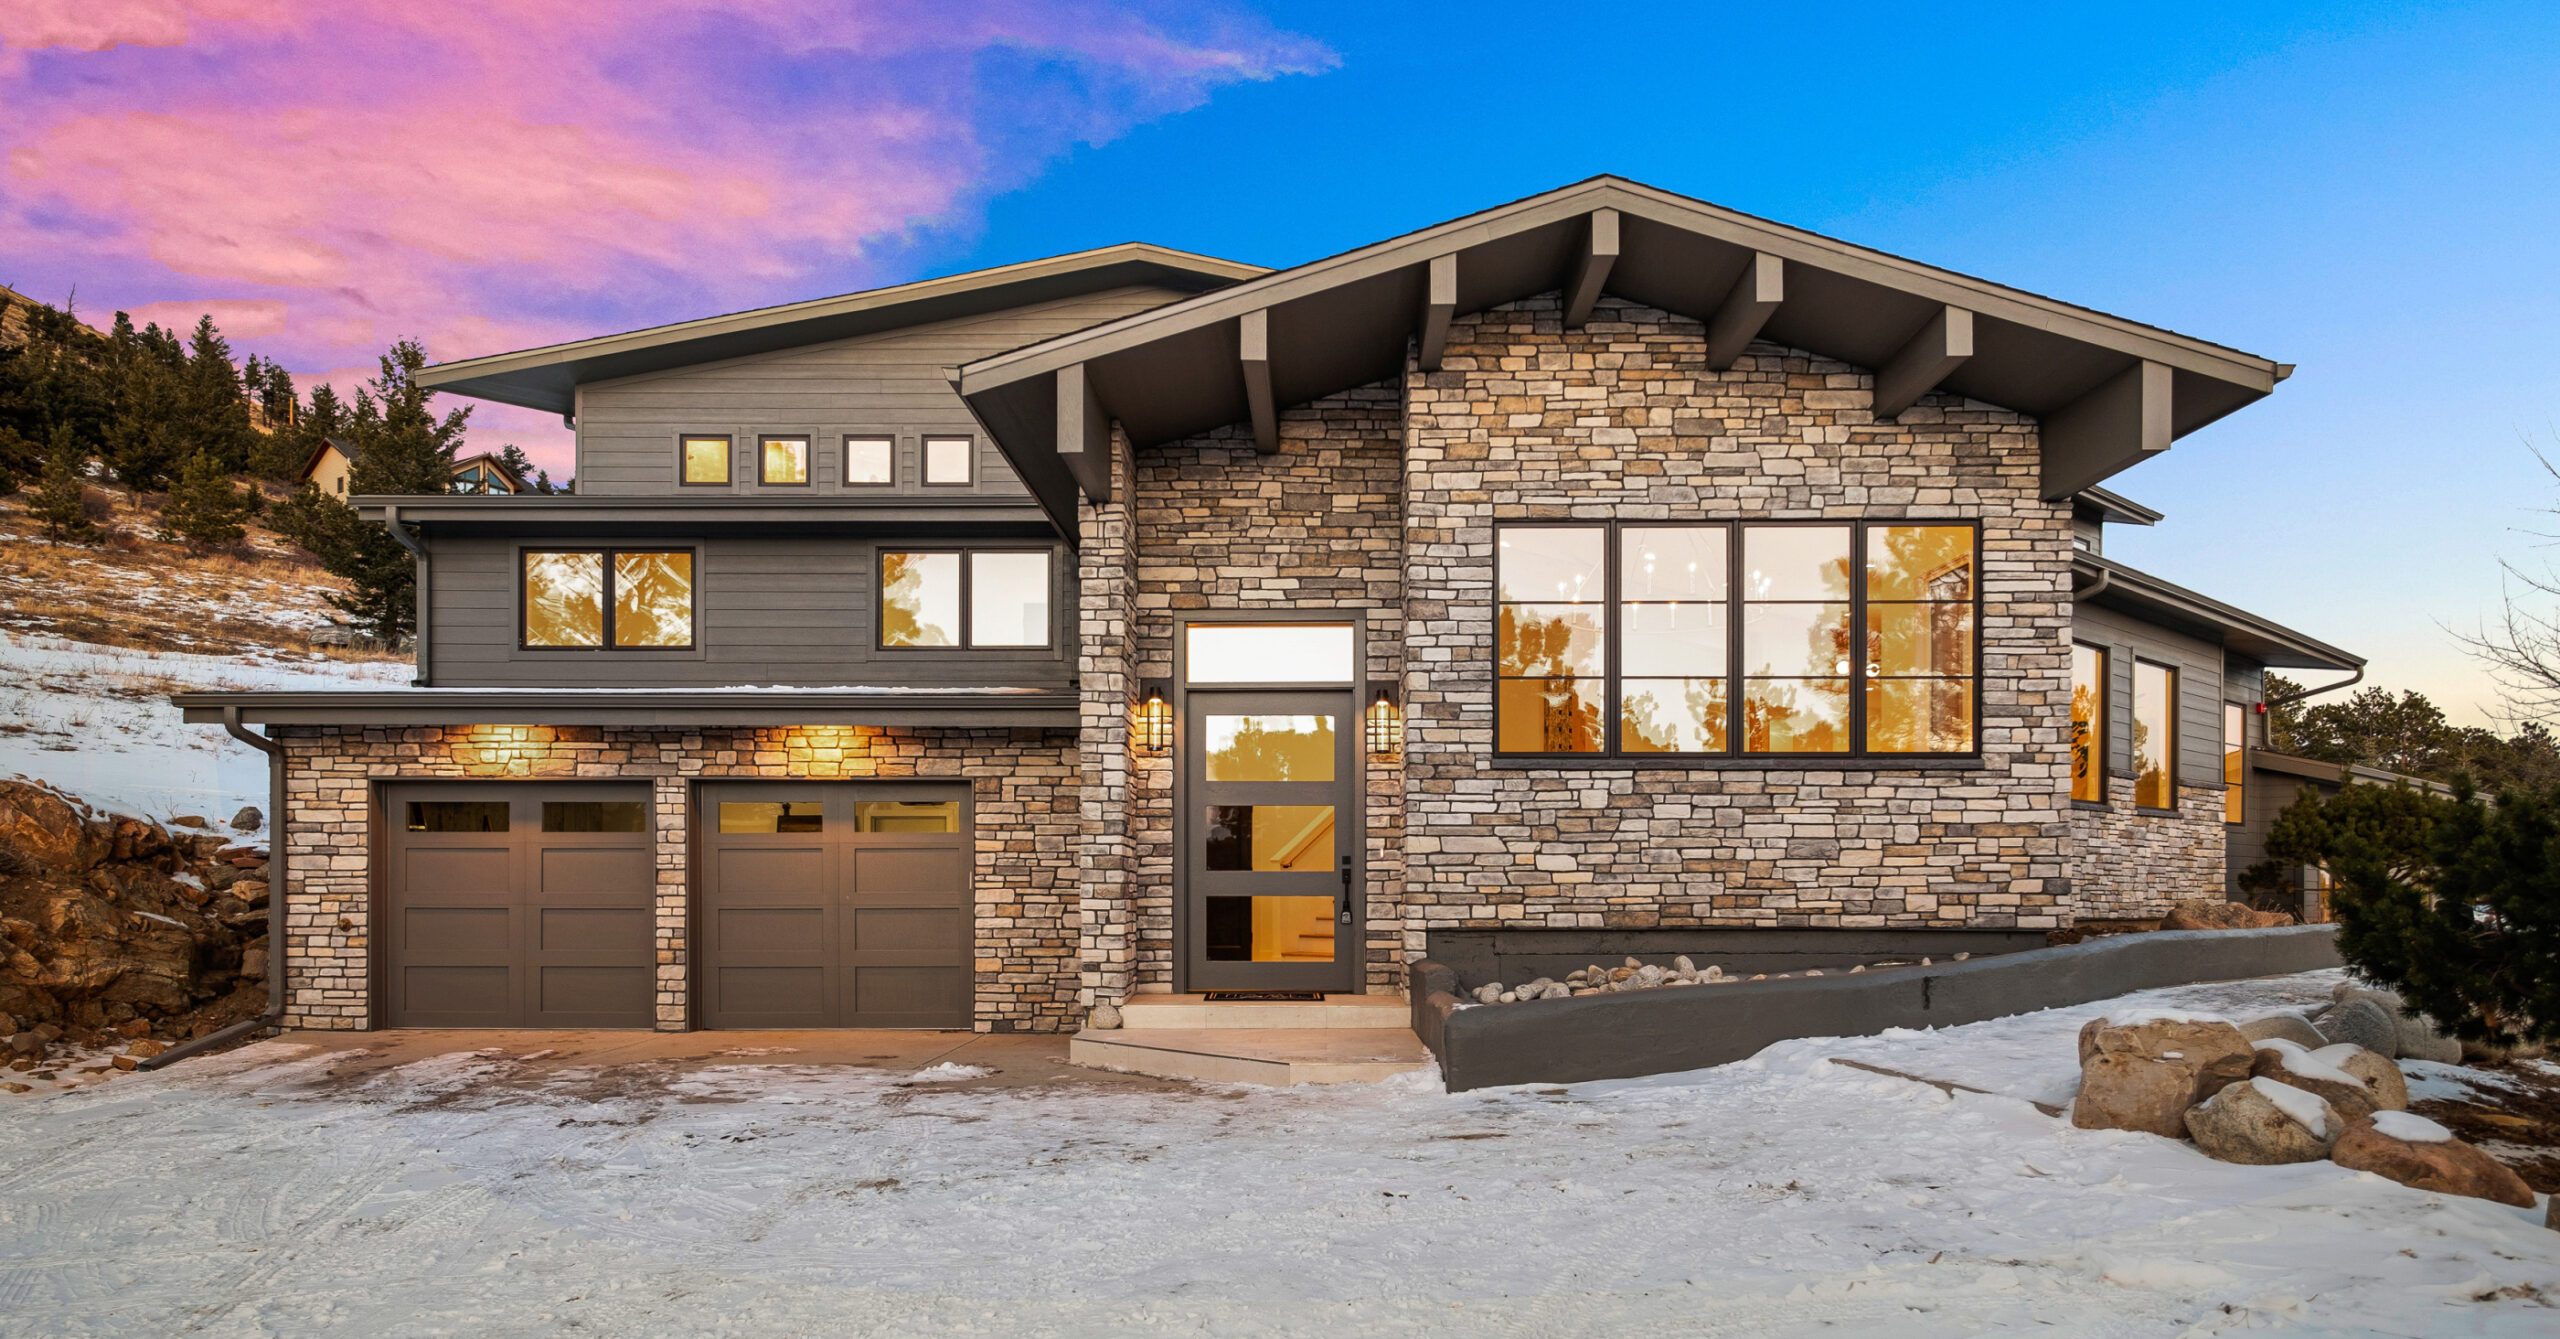 Custom Home in the Mountains at Sunset - Exterior - Melton Design build